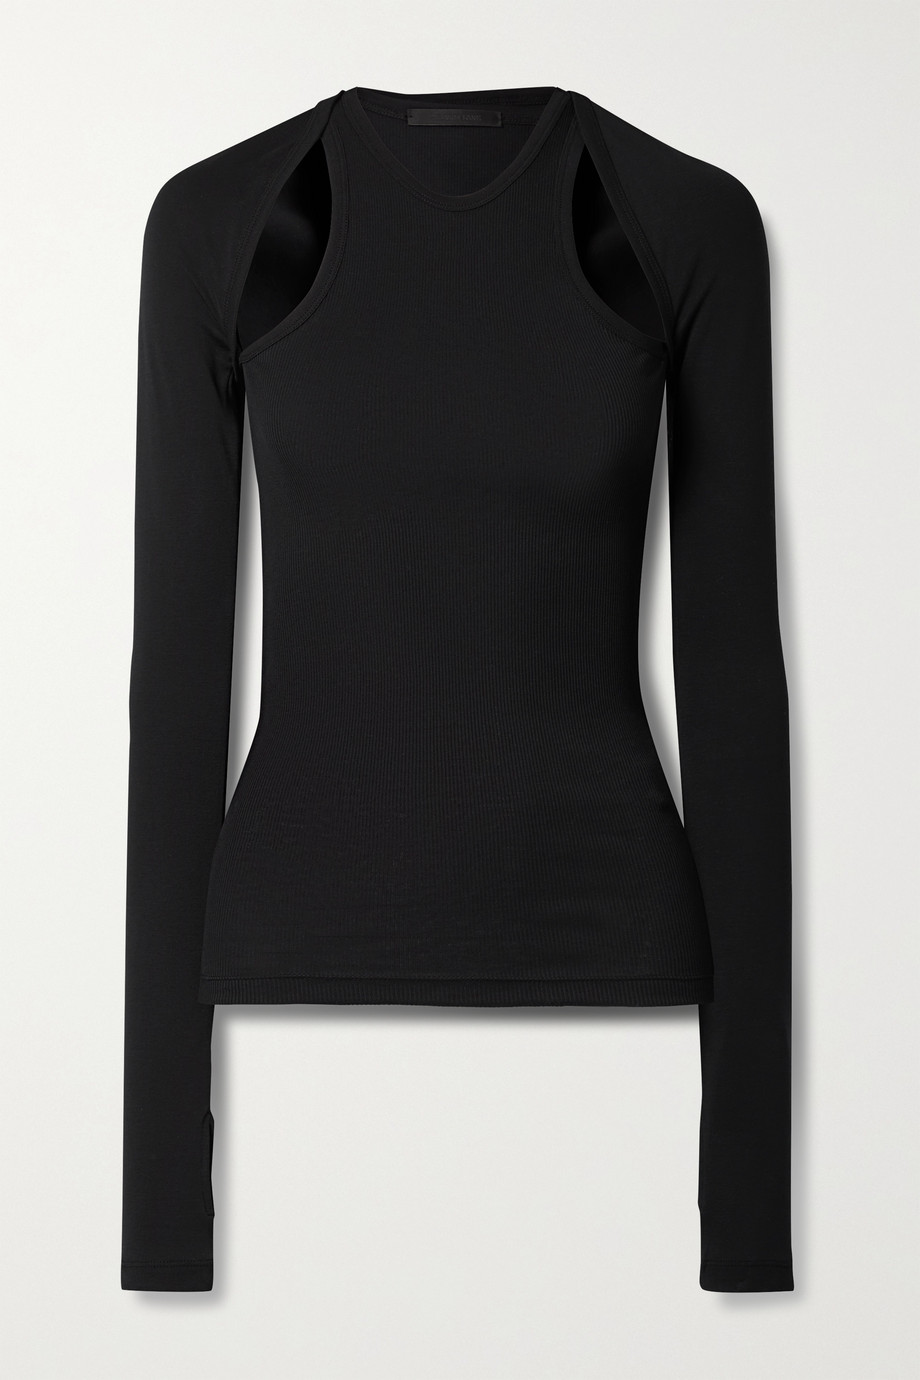 Helmut Lang Layered ribbed cotton-jersey top